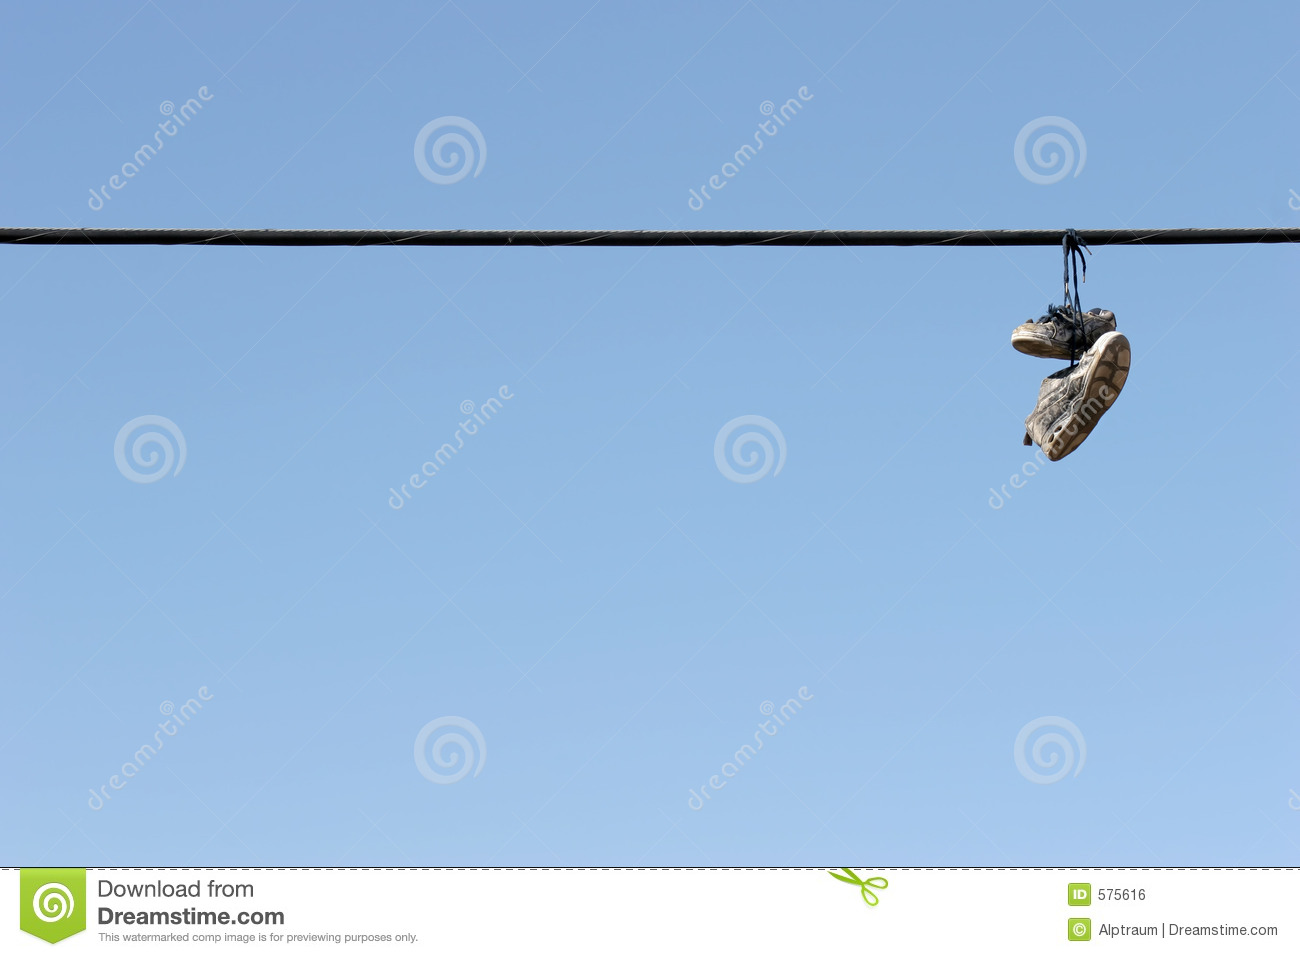 pair of shoes hang from power lines above Hayes Street. Photo by